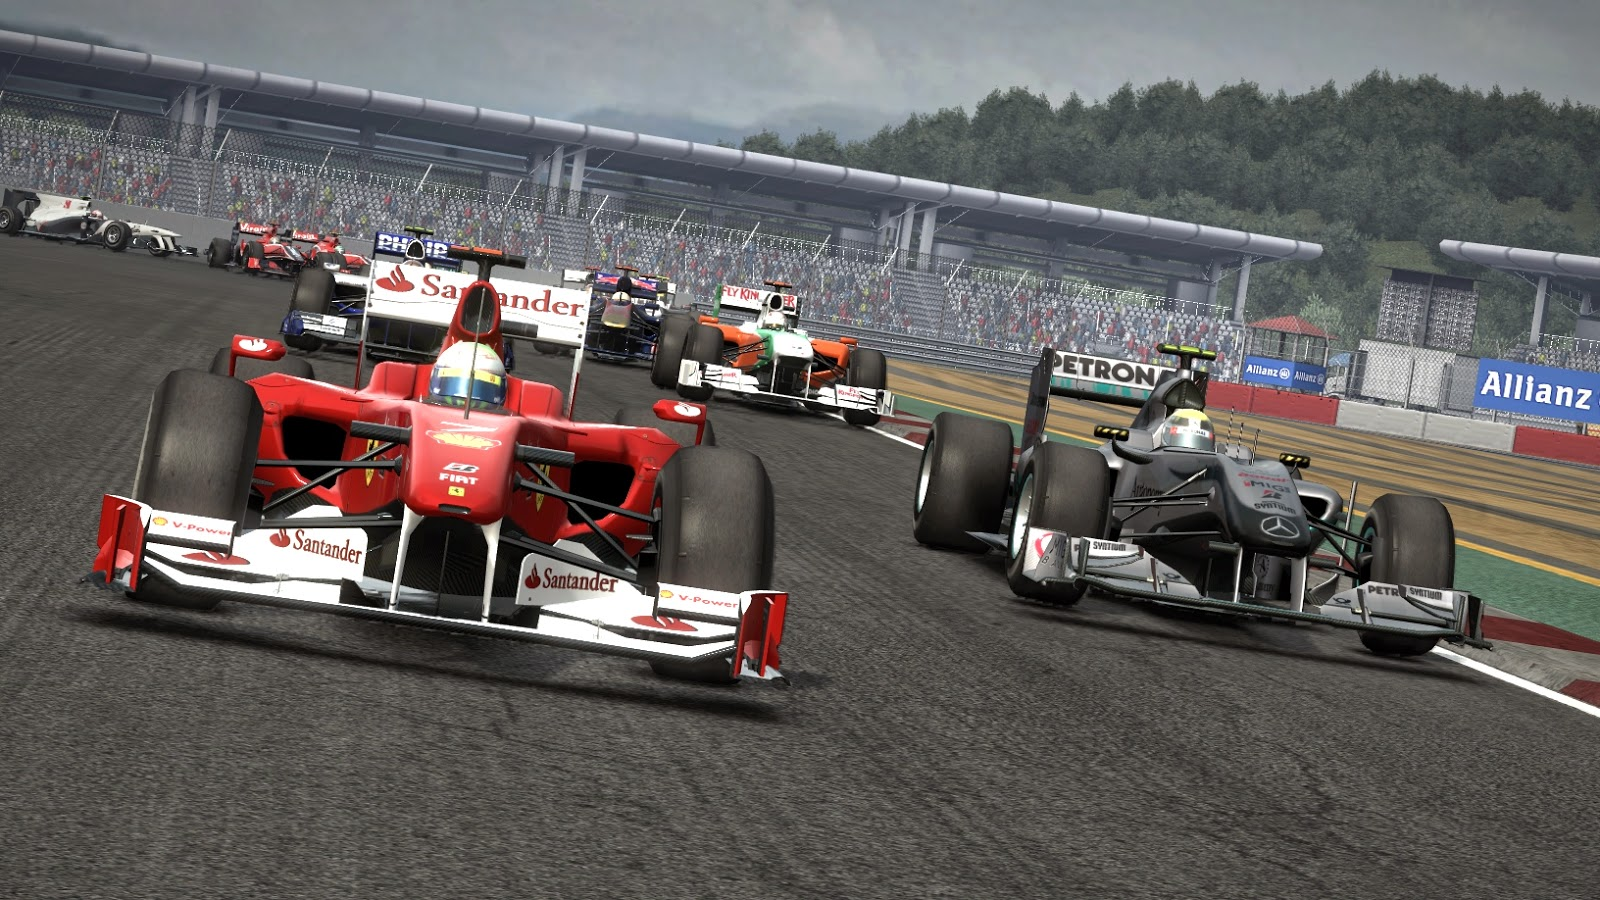 F1 2010 pc game crack free download movies-clubs.